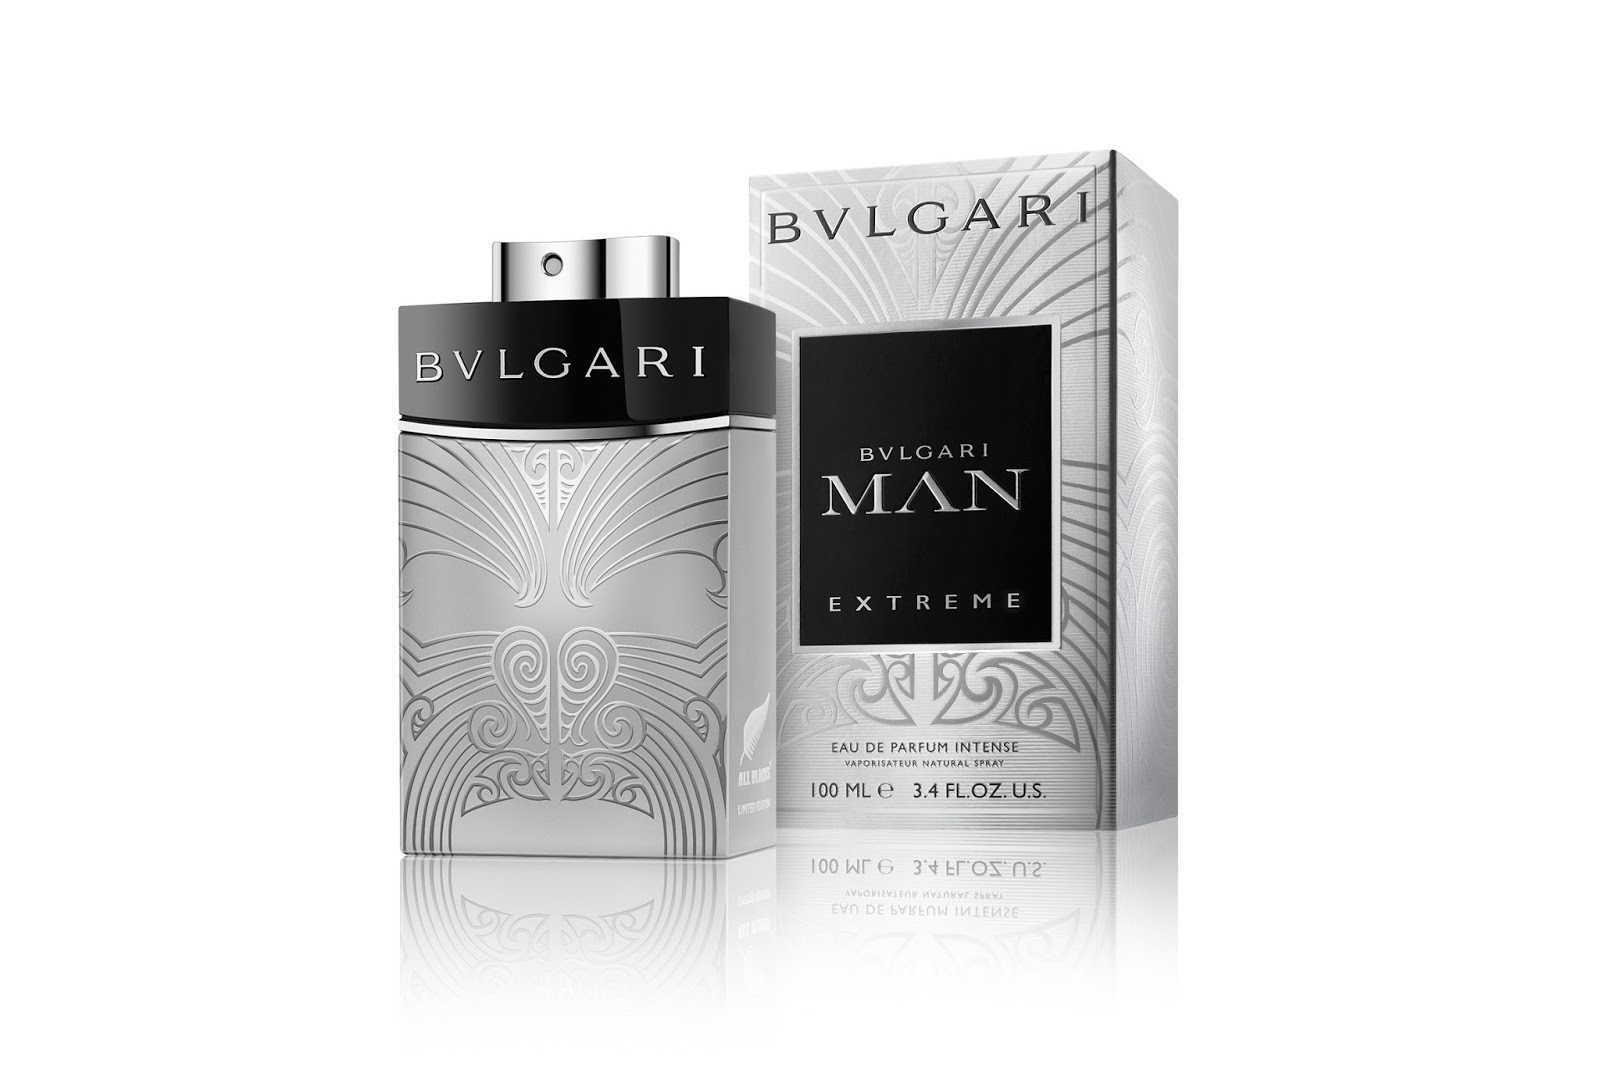 Bulgari-Man-Extreme-All-Blacks-Limited-Edition